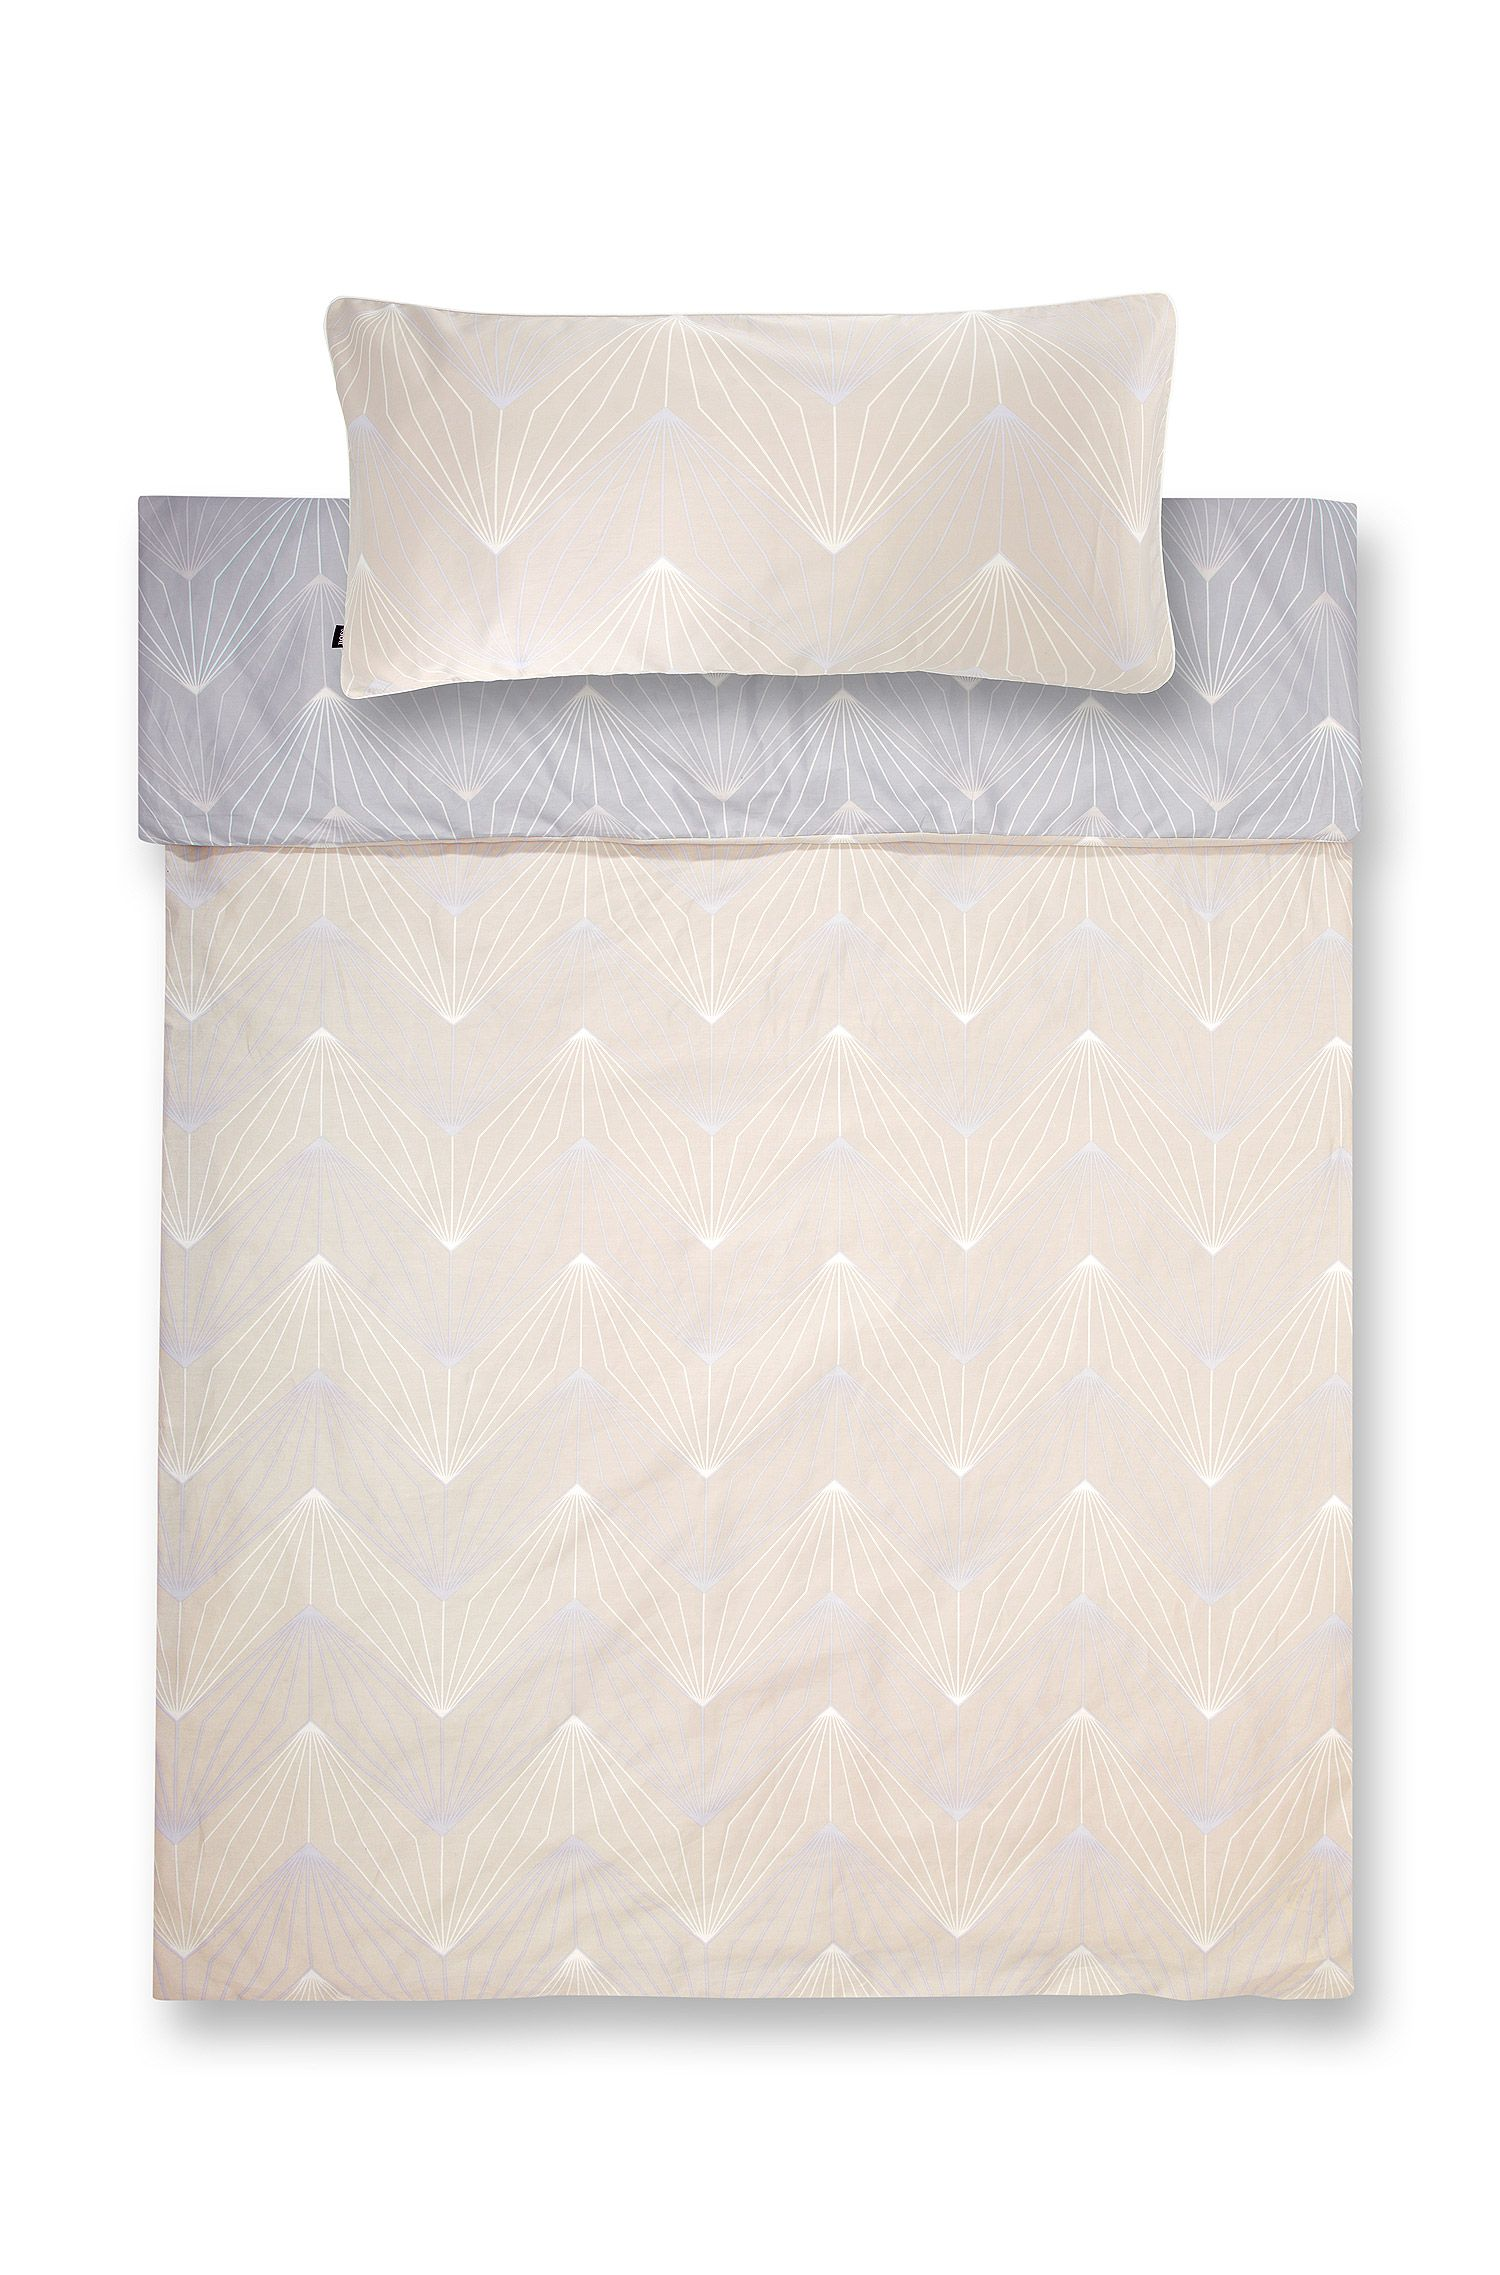 Duvet cover 'ORI' in top-quality cotton satin